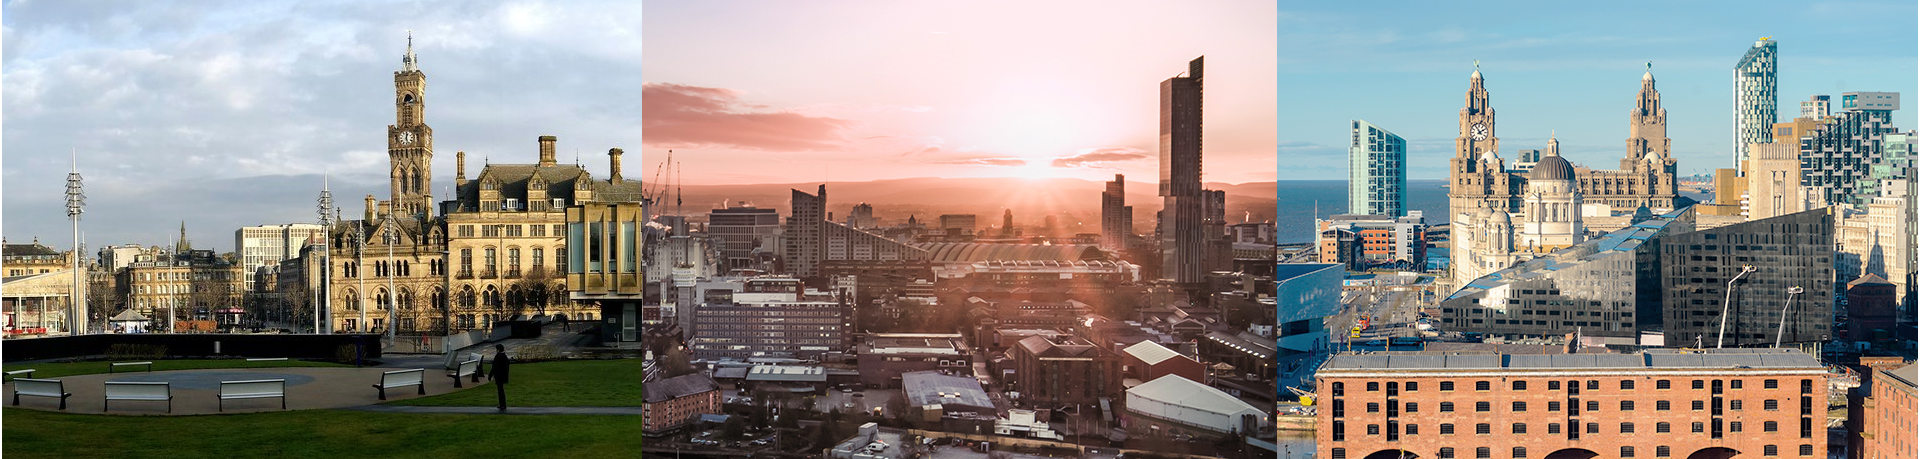 Views across the skylines of Bradford, Manchester and Liverpool